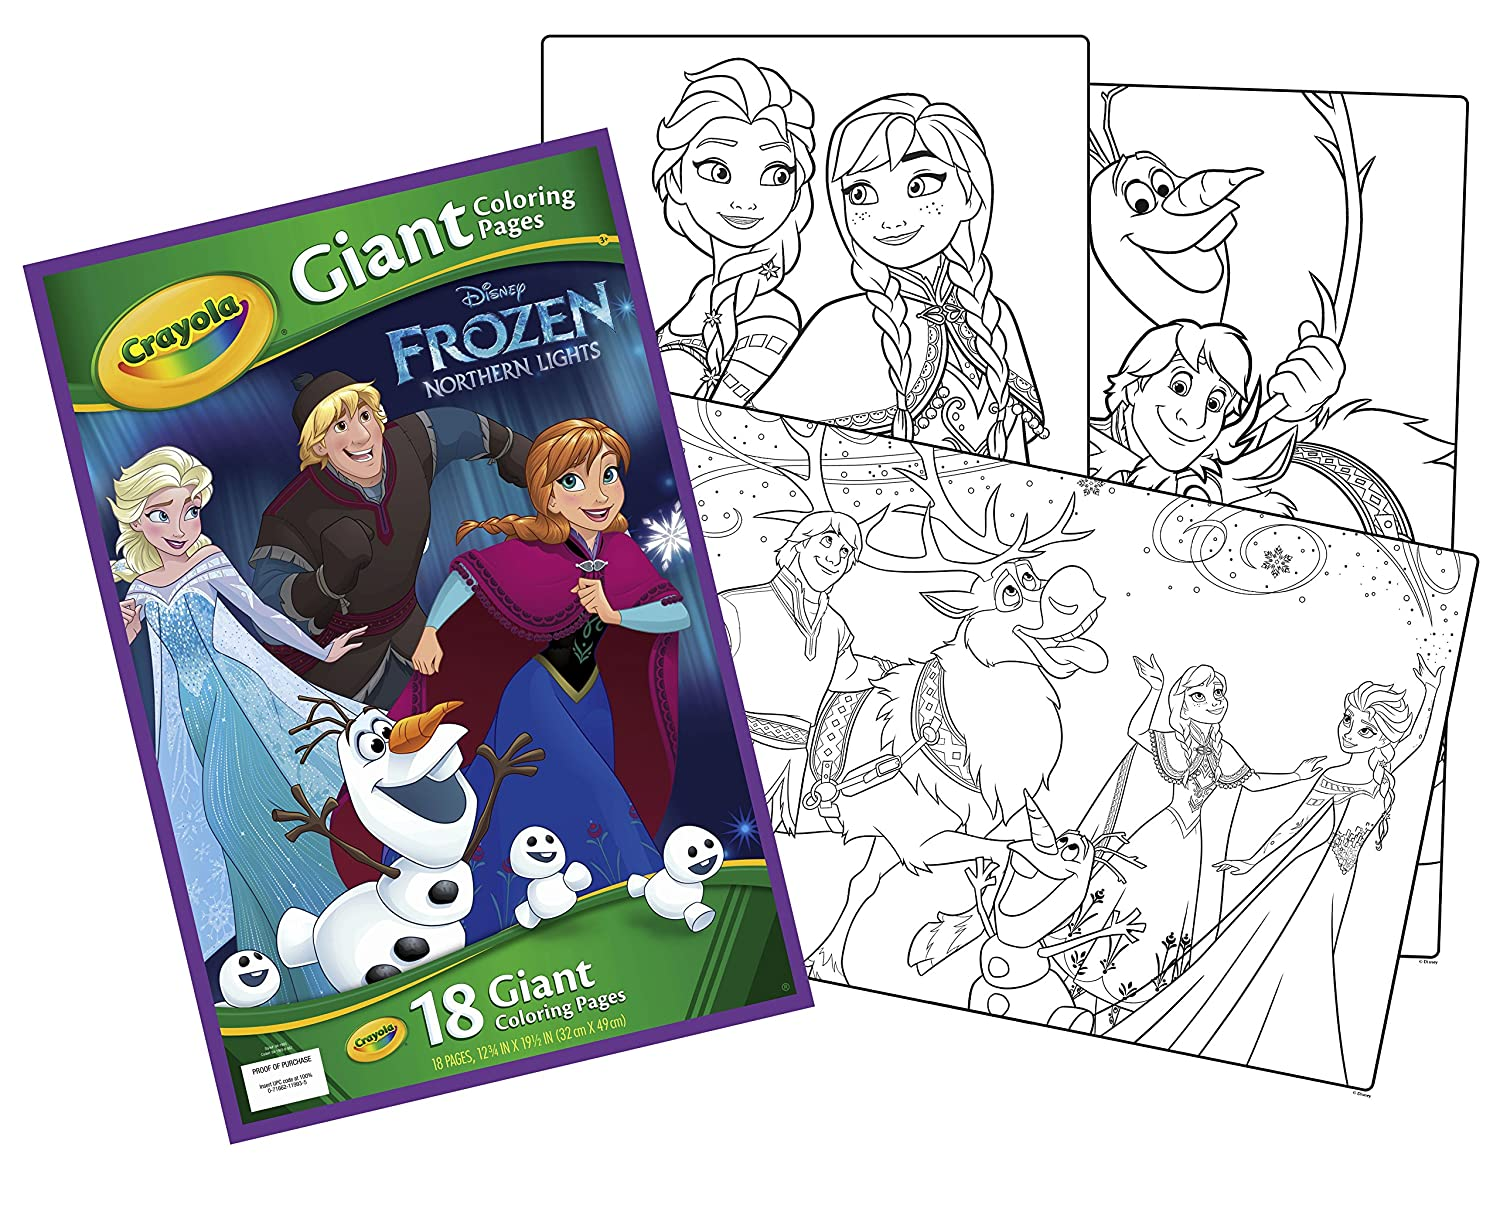 52+ Giant Coloring Books For Adults Free